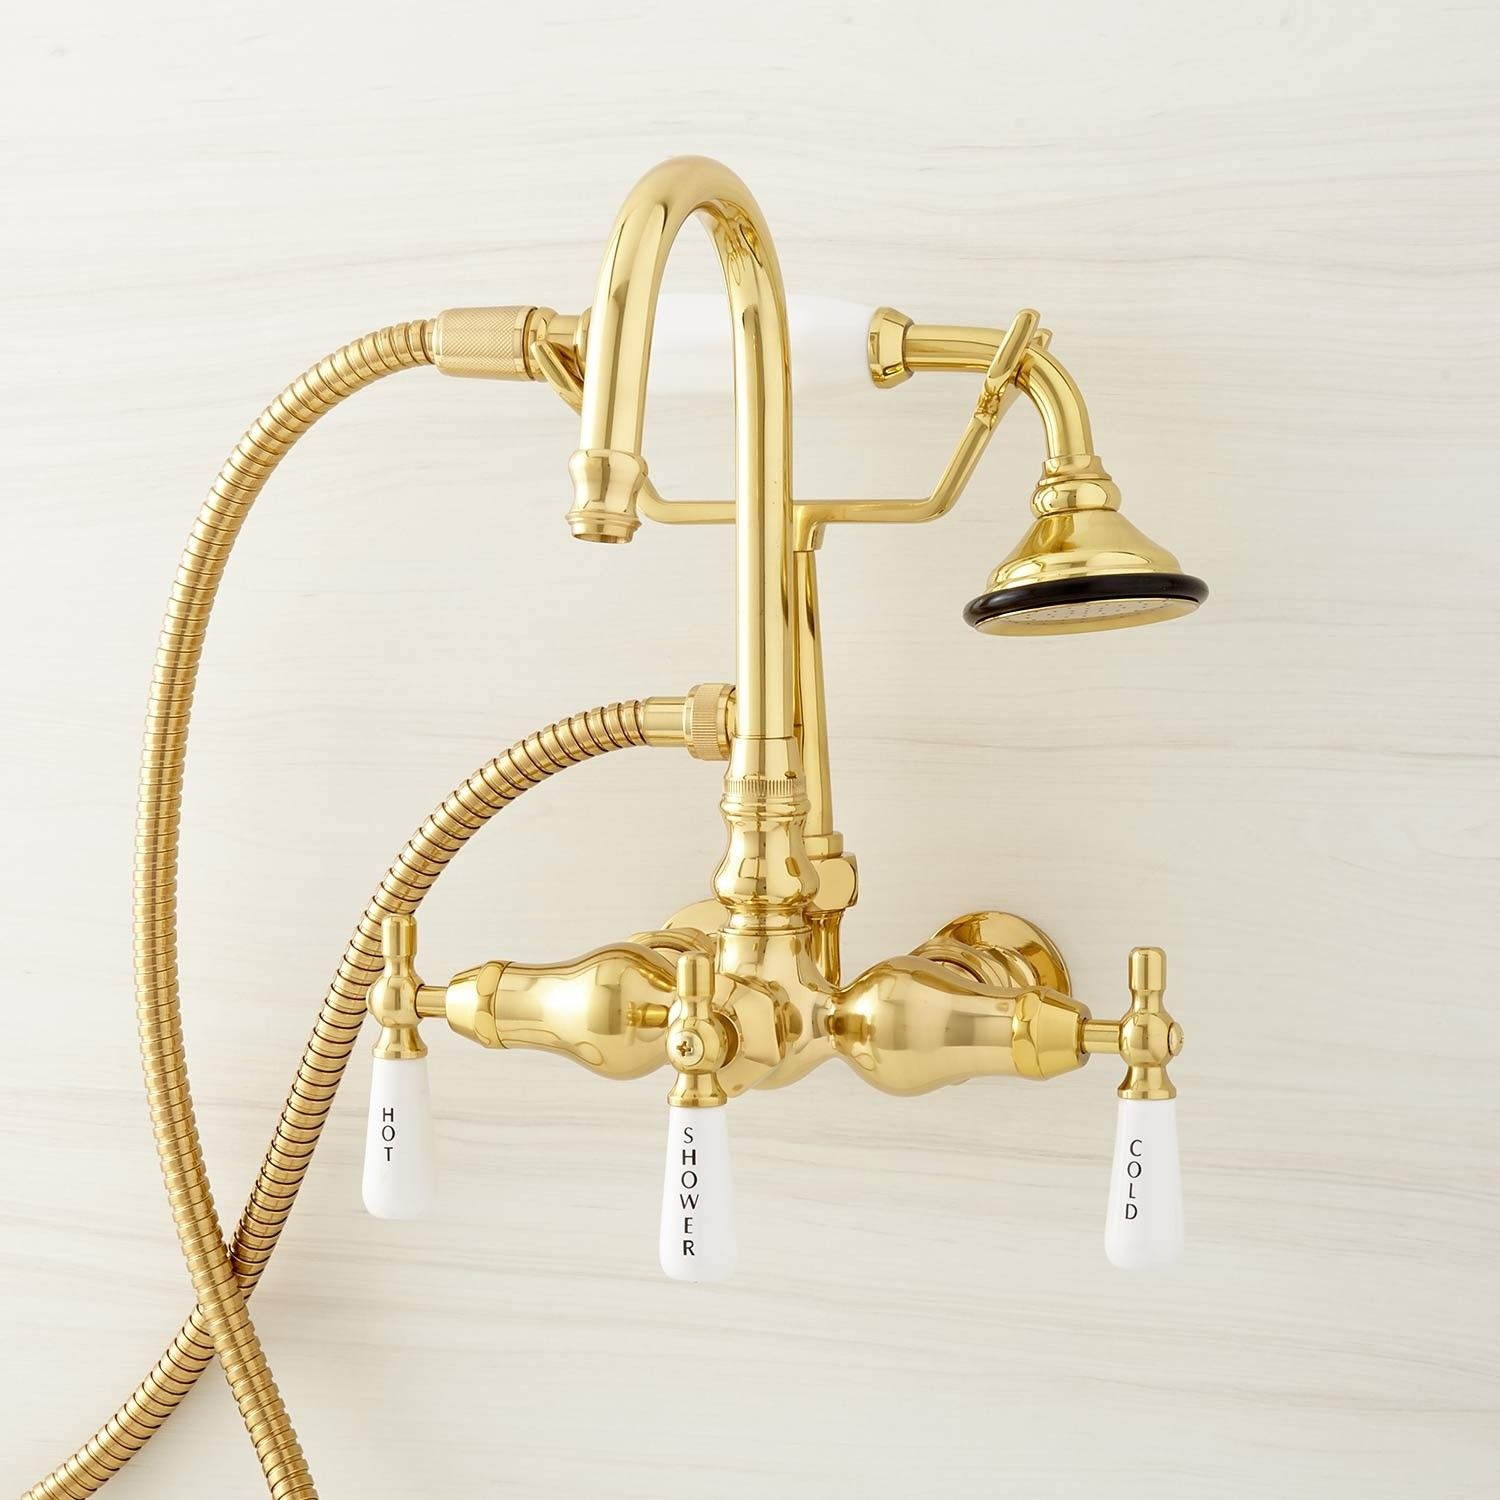 Gooseneck Tub Faucet With Hand Shower And Wall Couplers Tub